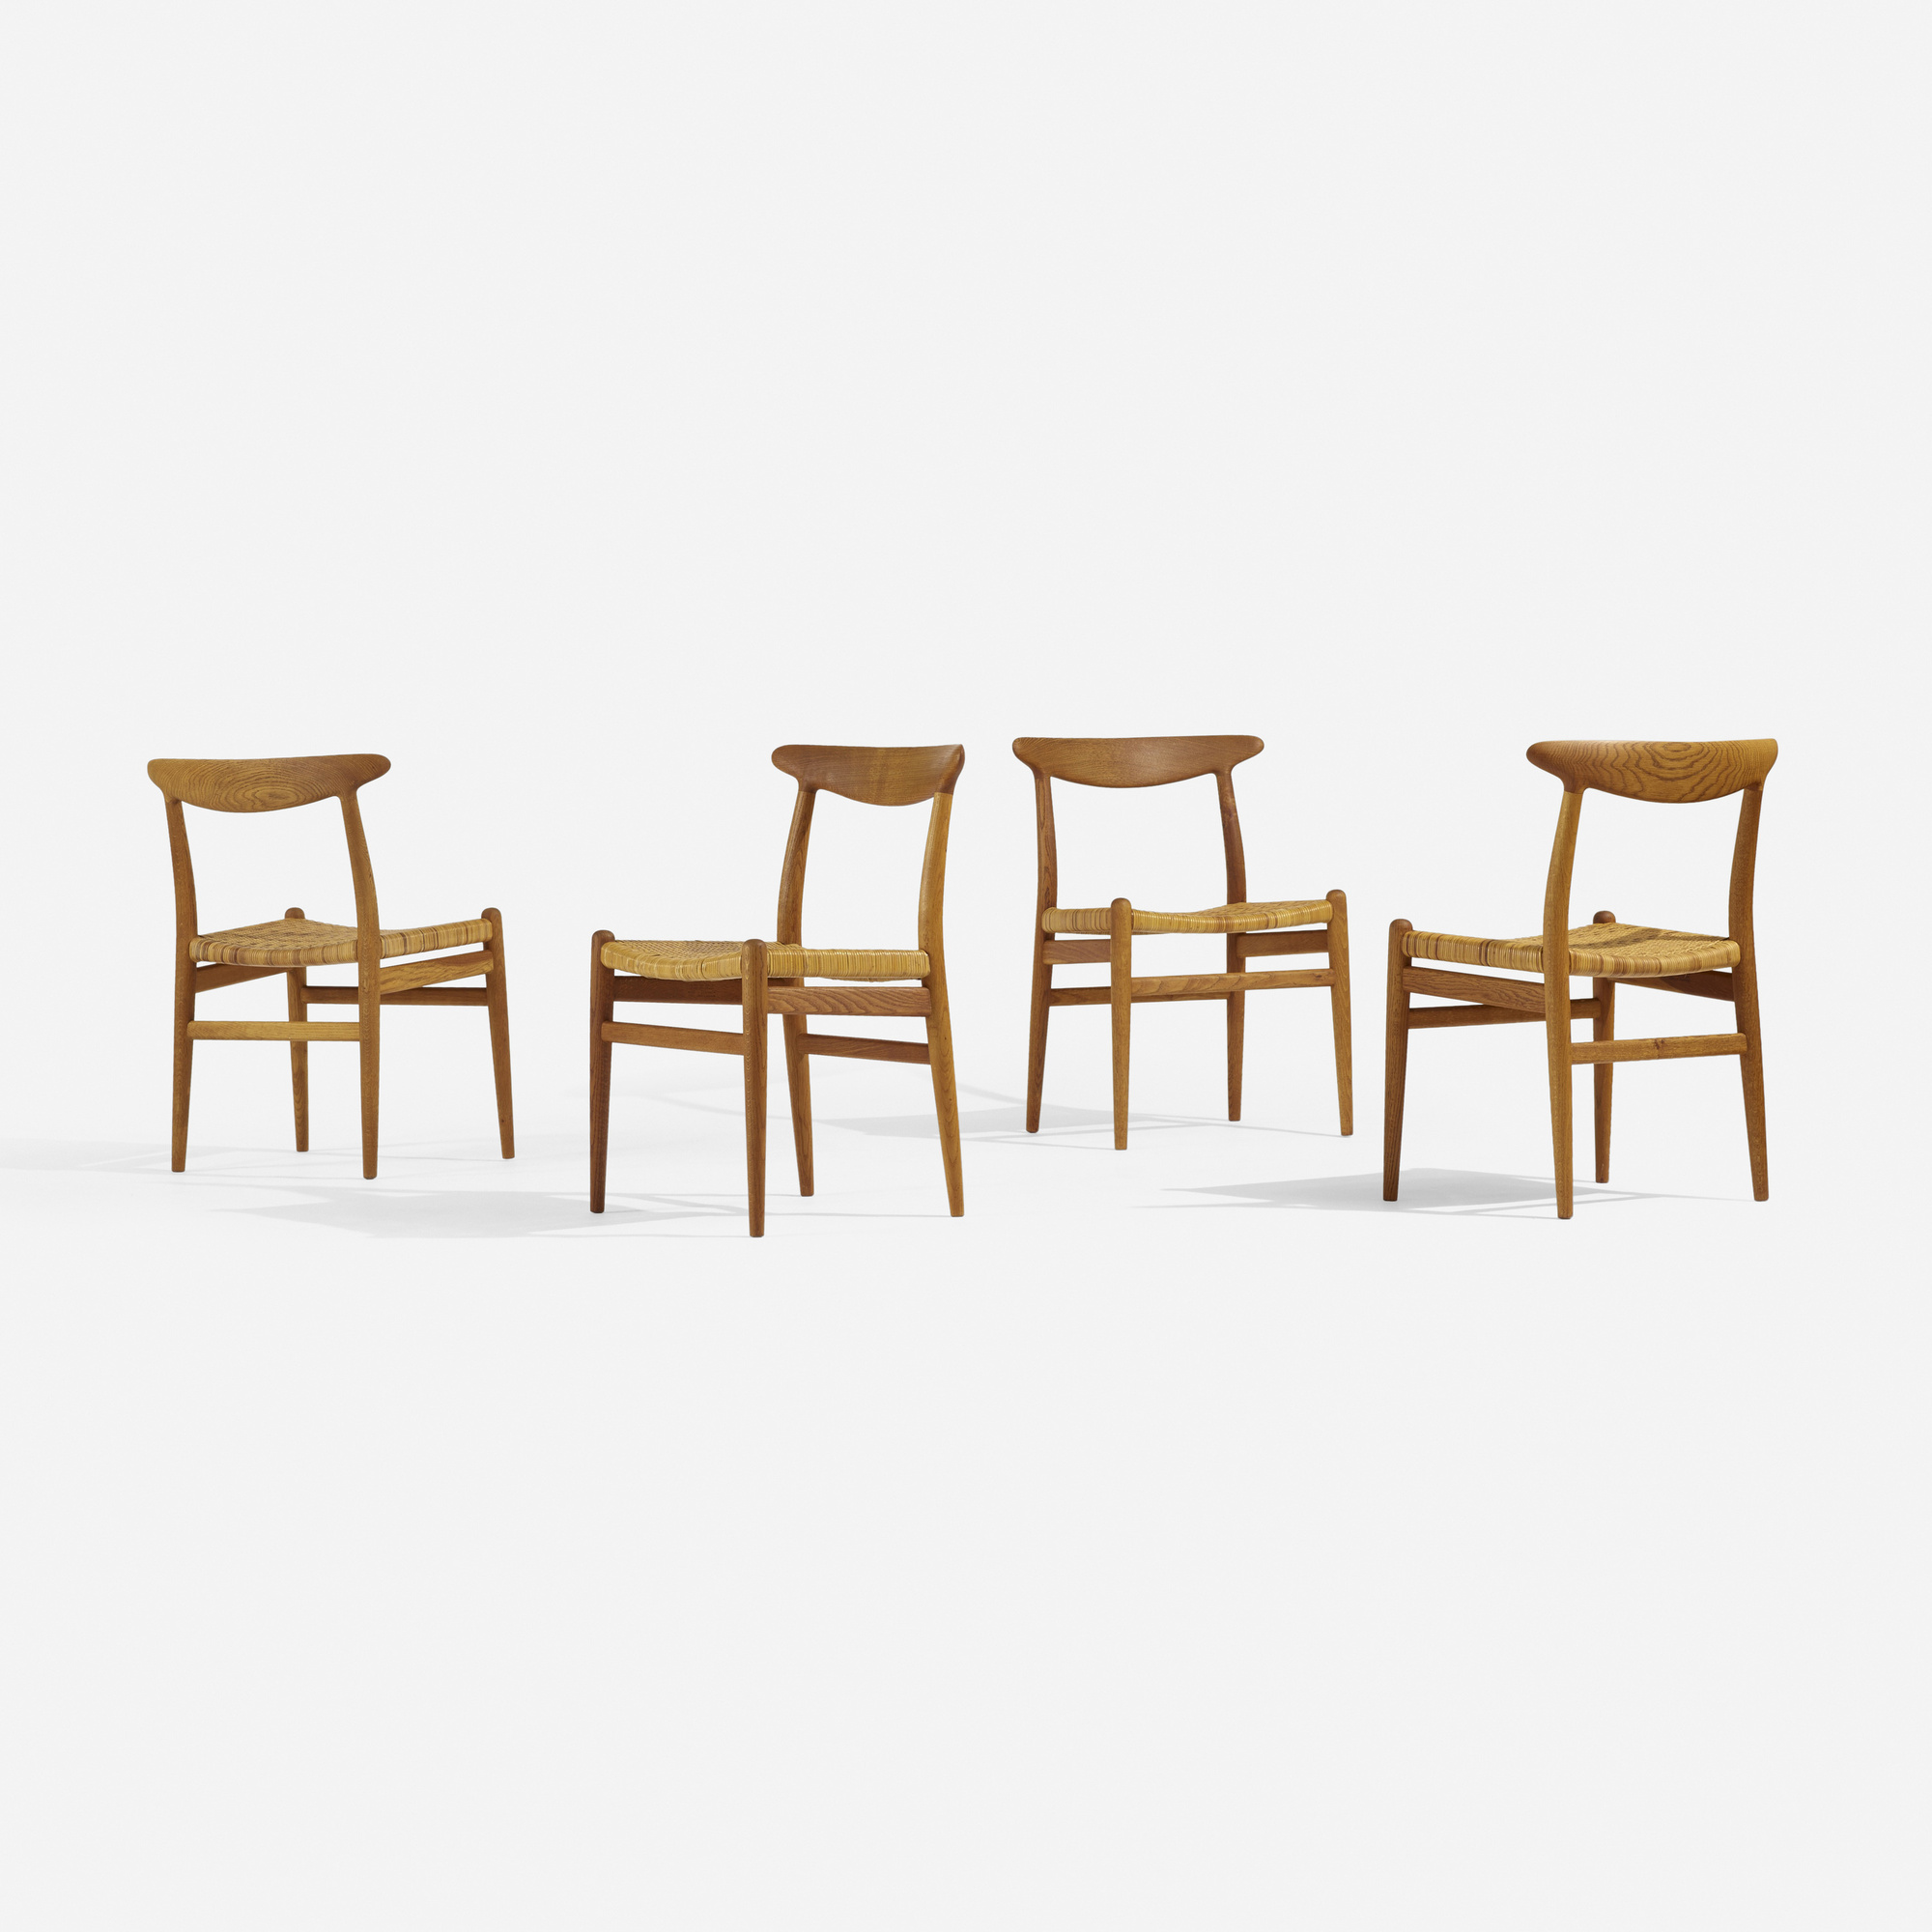 276: Hans J. Wegner / dining chairs, set of four (2 of 4)